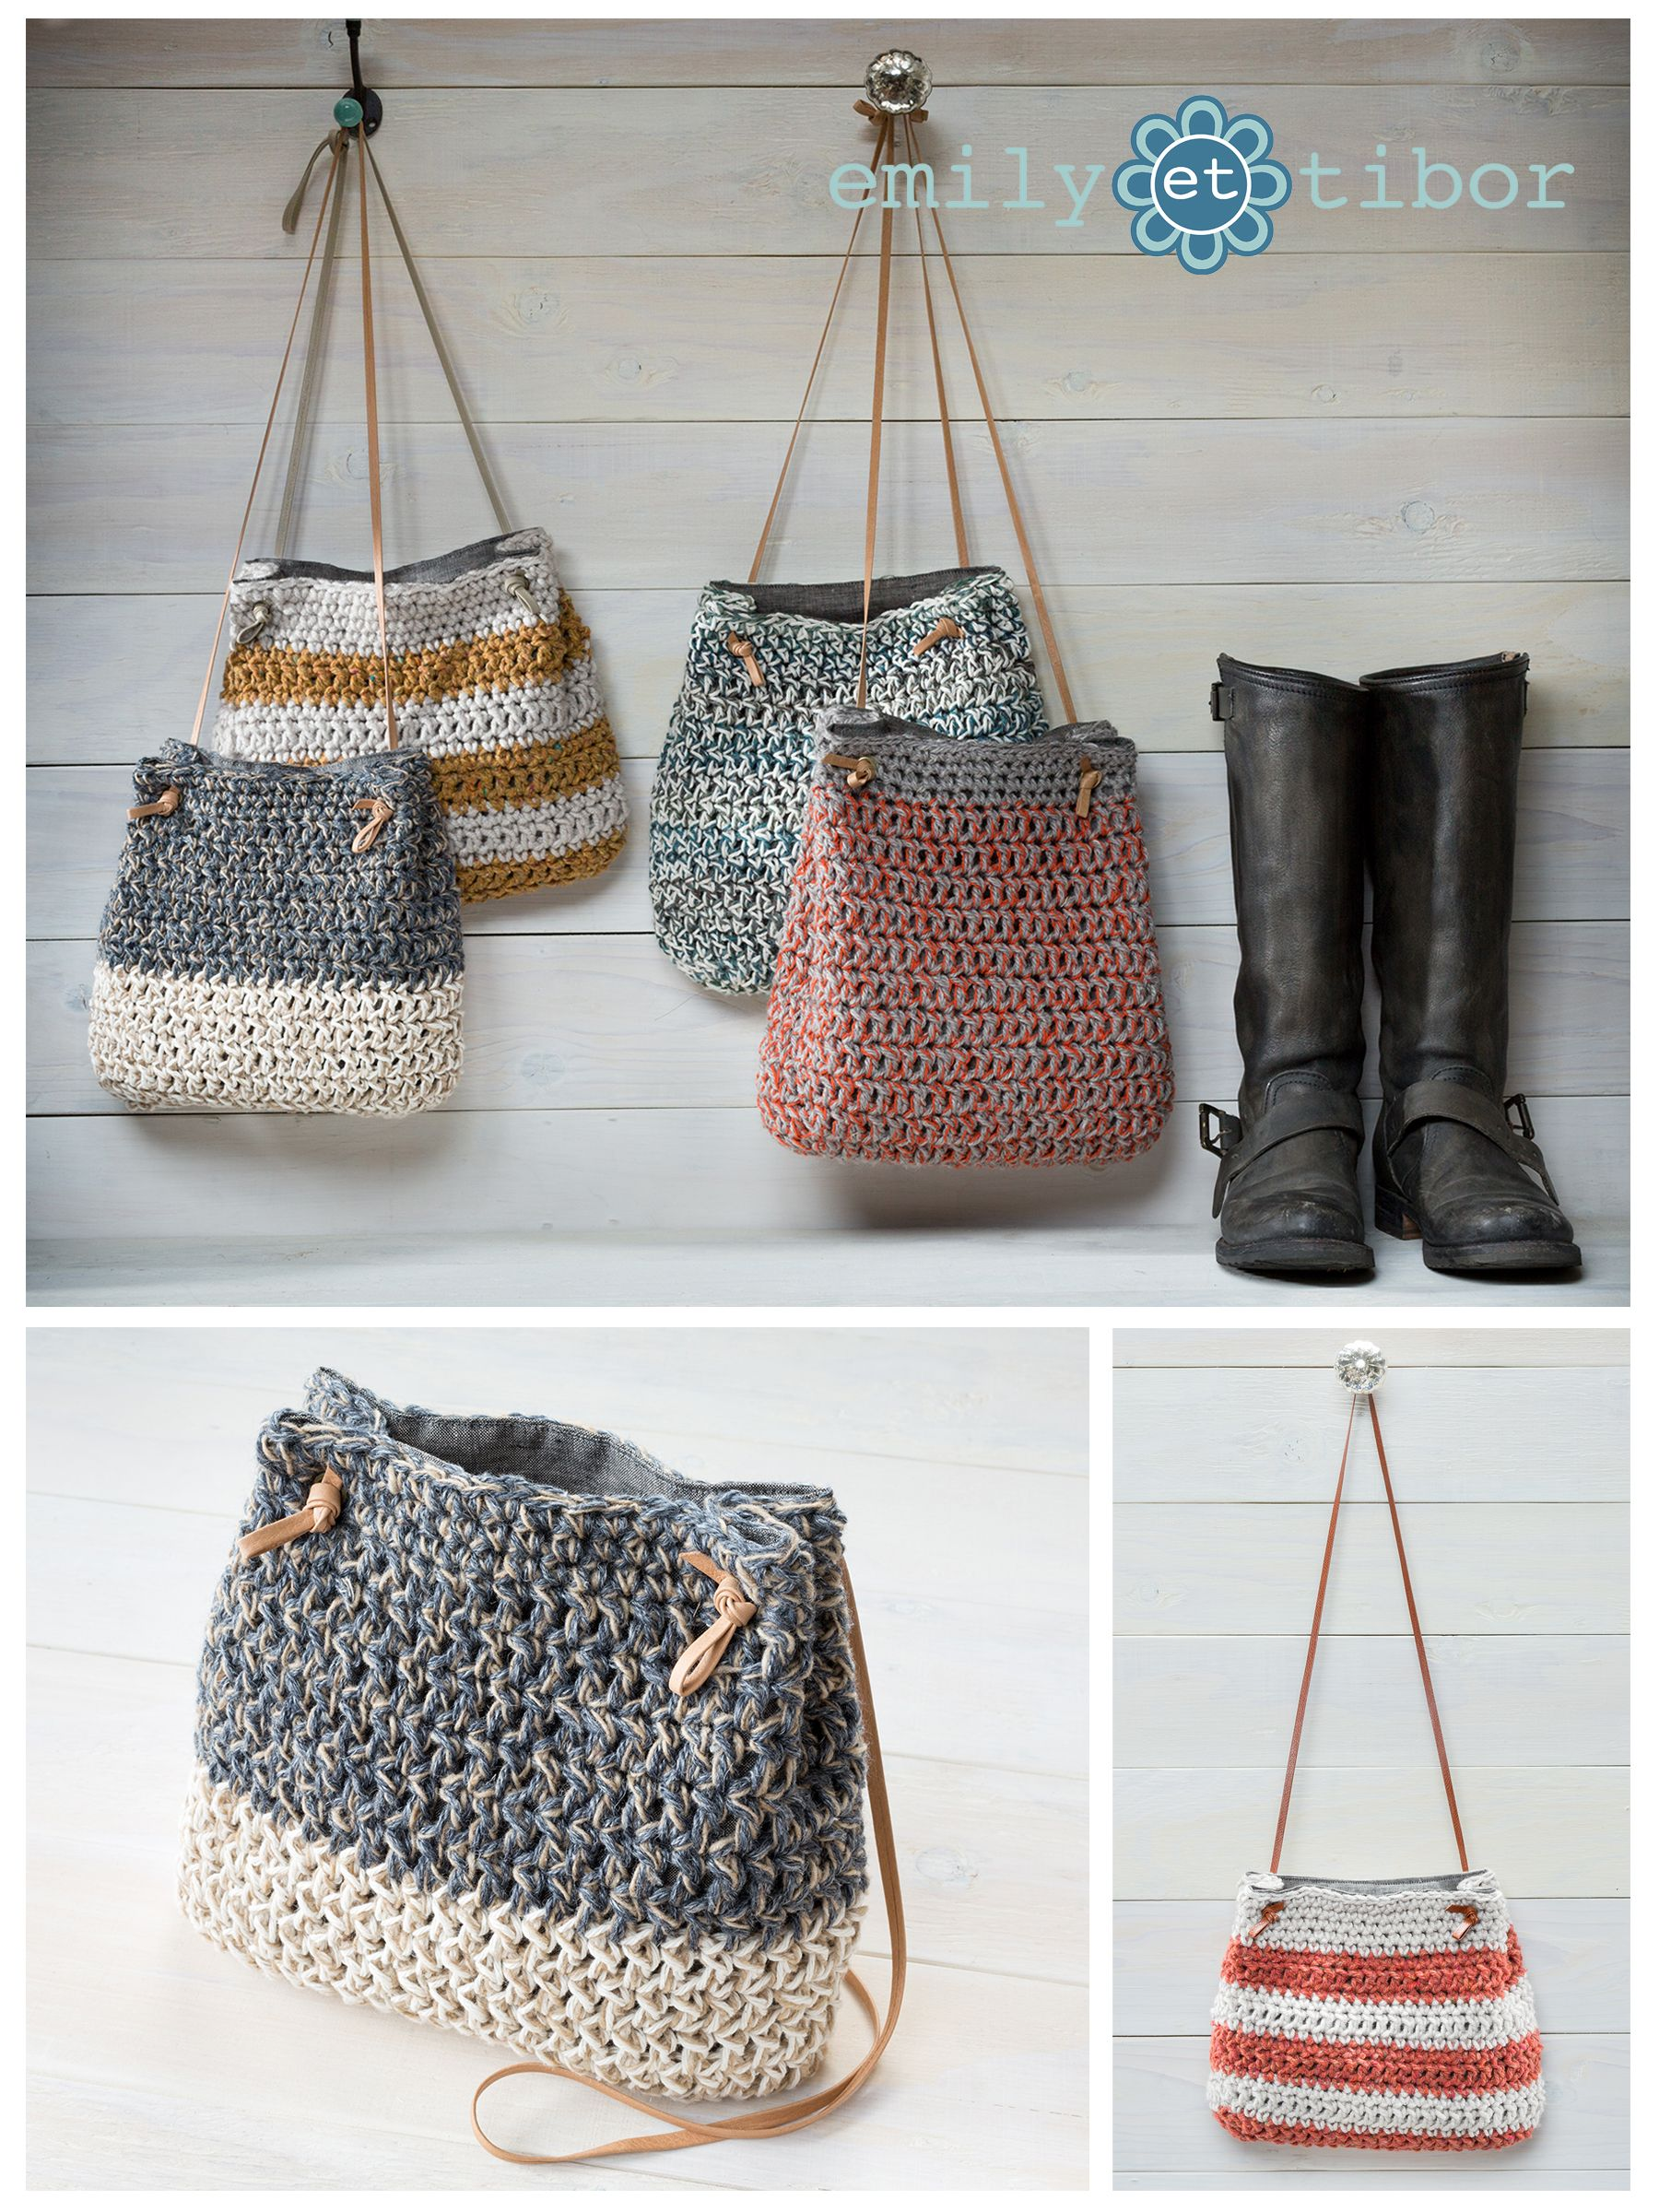 Crochet Pattern For Bucket Bag : Boho style hand crocheted bucket bags in 11 unique designs ...